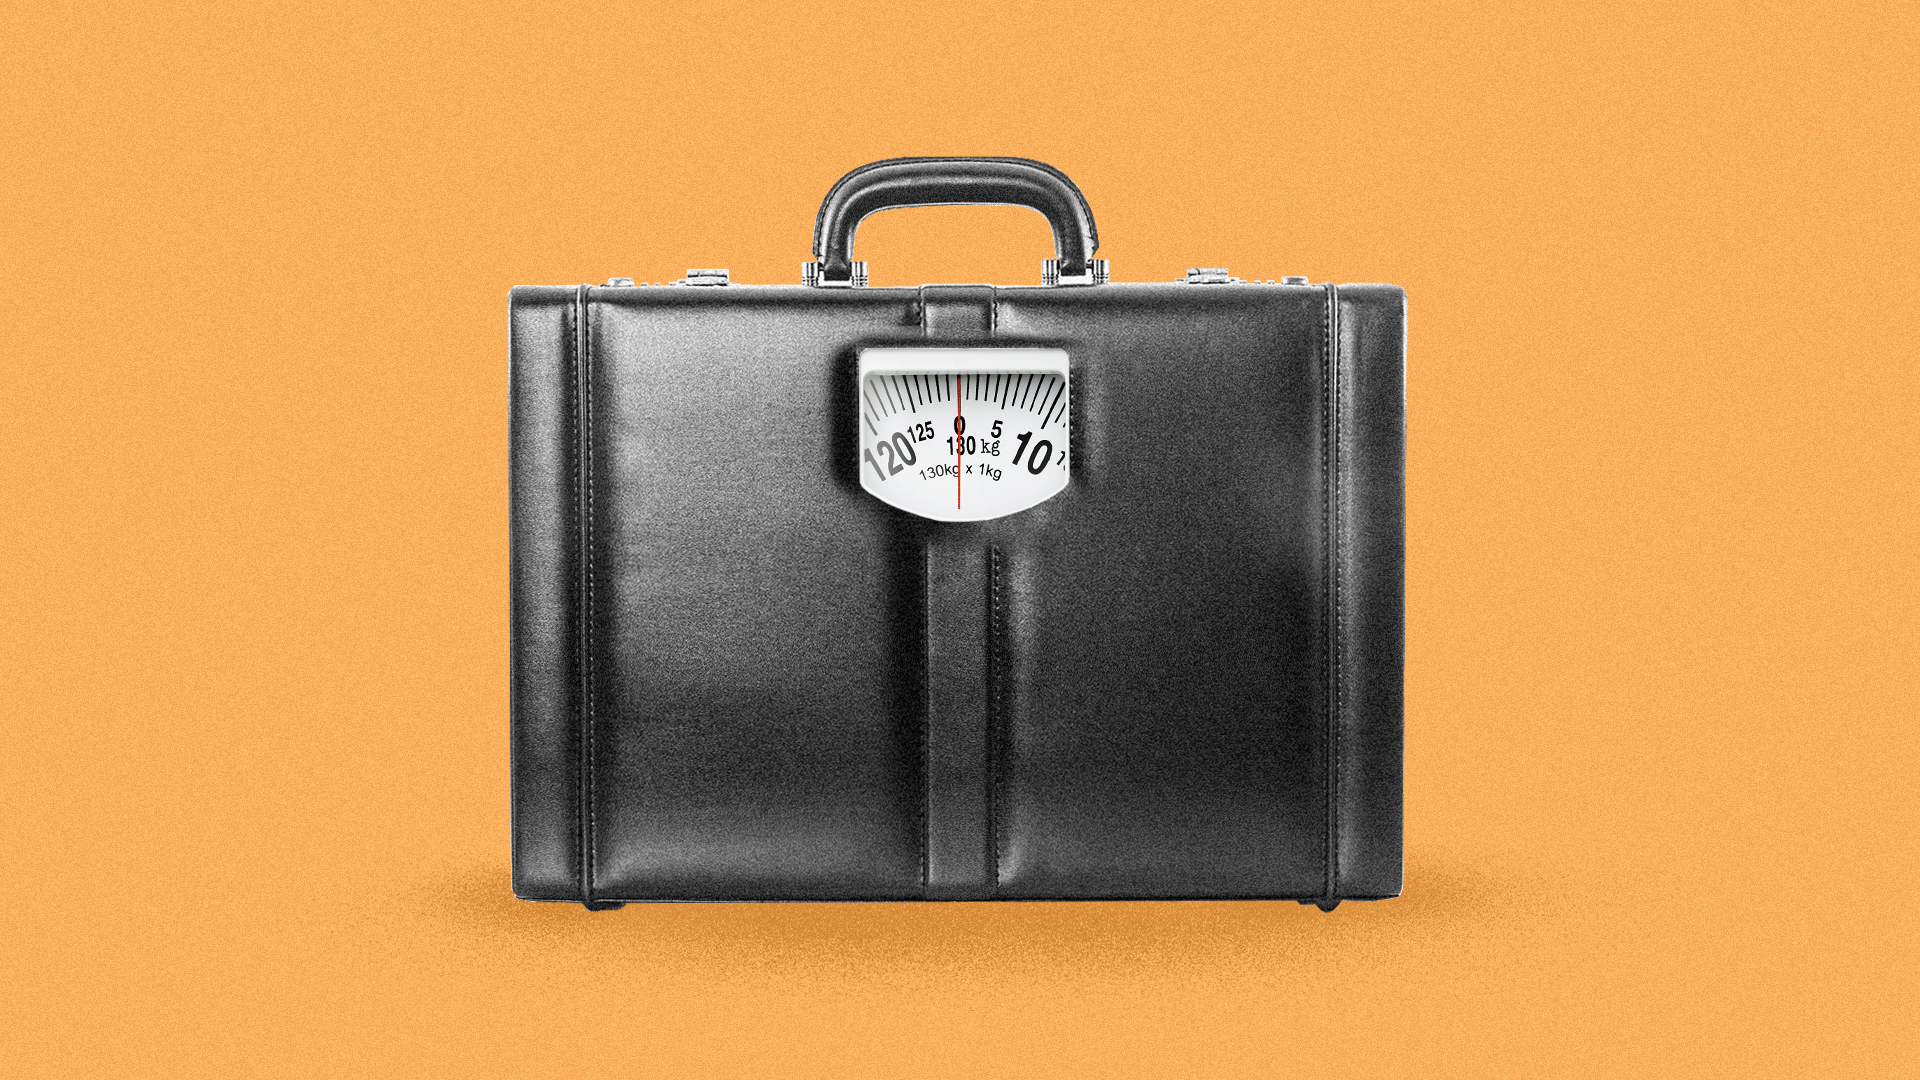 Illustration of a scale built into a leather briefcase.